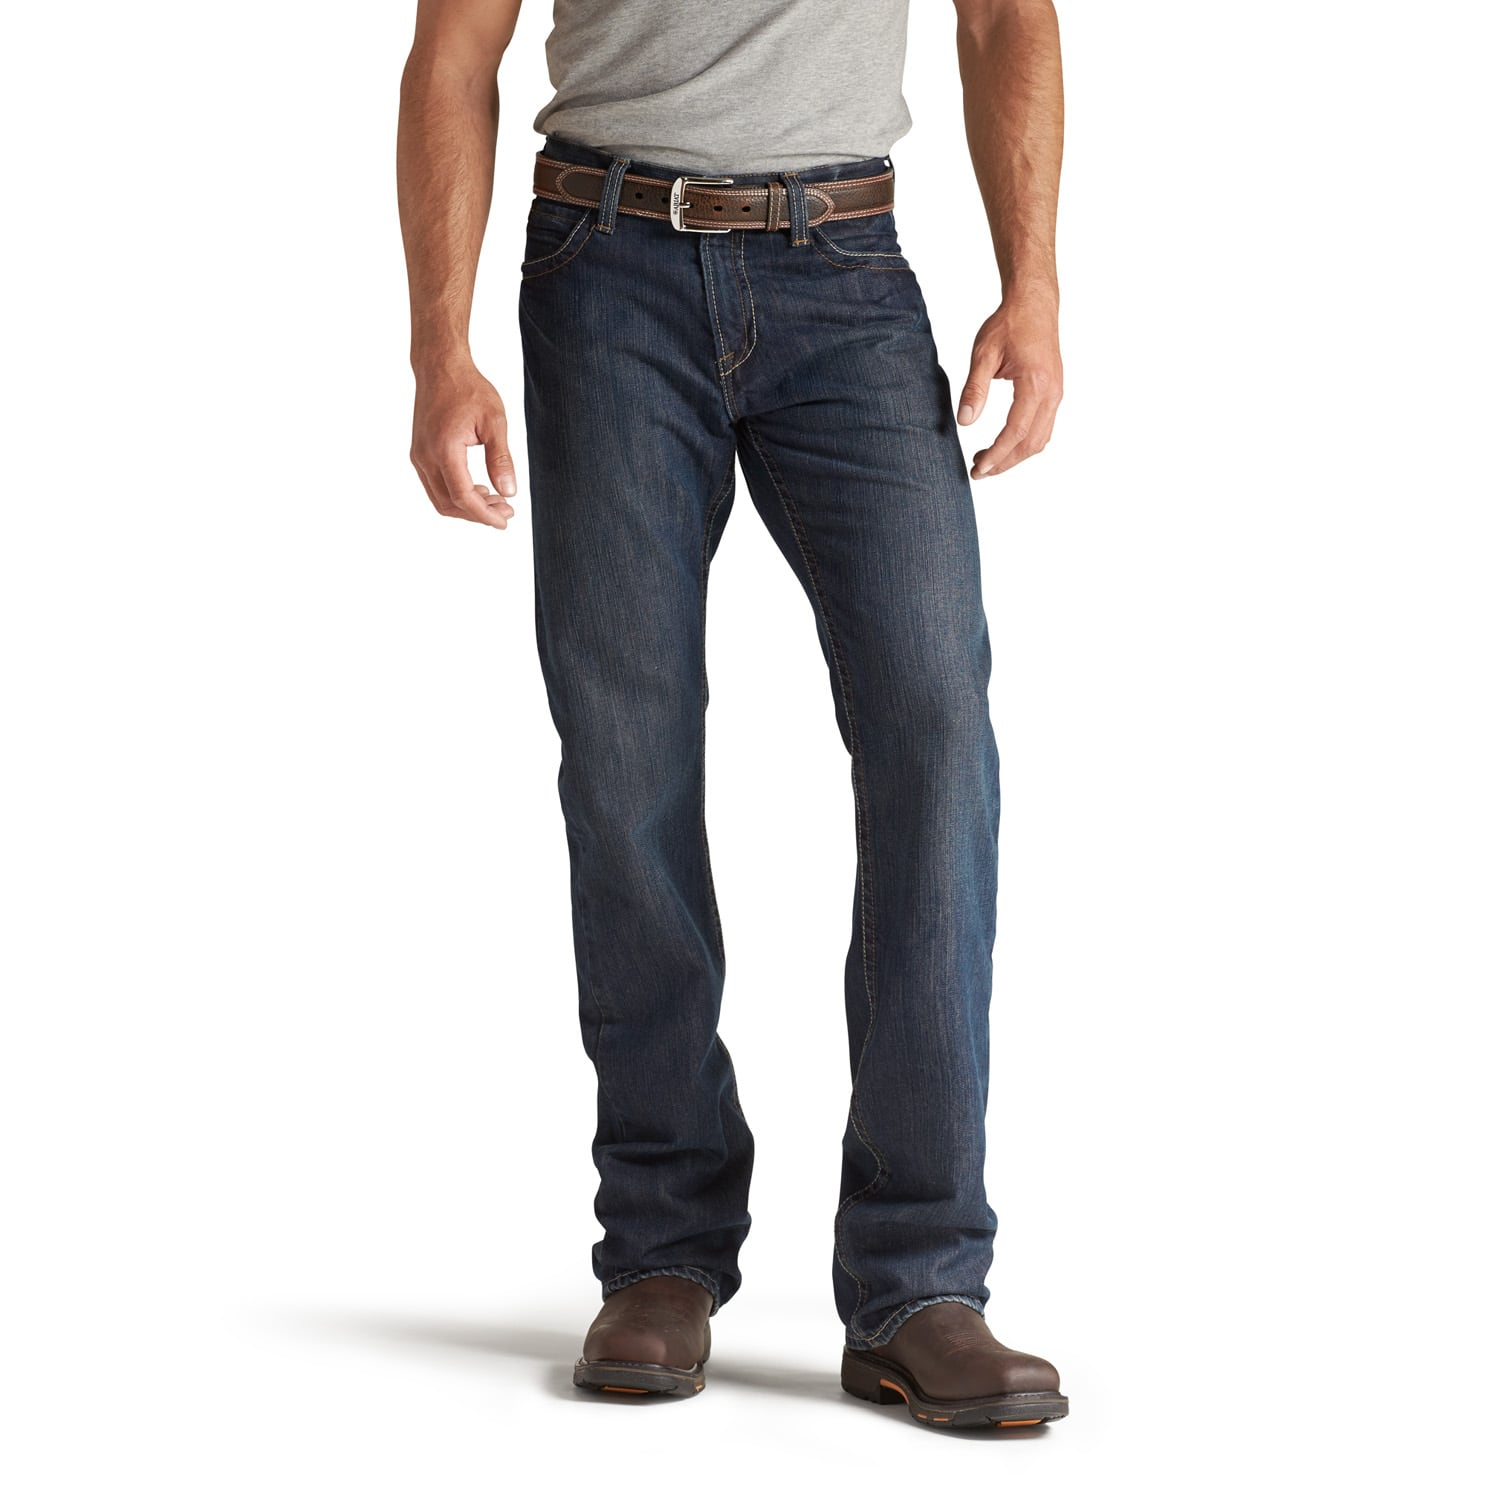 Ariat M4 Low Rise Boot Cut FR Jeans ariat,ariat jeans,ariat fr jeans,ariat frc jeans,ariat fr clothing,ariat fr,ariat frc,ariat fr clothes,ariat frc clothing,ariat frc clothes,ariat m4,m4,ariat m4 jeans,ariat m4 boot cut jeans,ariat m4 shale jeans,ariat m4 blue jeans,ariat fr m4 jeans,ariat fr m4 boot cut jeans,ariat fr m4 shale jeans,ariat fr m4 blue jeans,fr denim jeans,cheap fr denim jeans,fr blue jeans,ariat flame retardant jeans,ariate flame resistant jeans,ariat fire retardant jeans,ariat flame retardant jeans,ariat arc rated m4 jeans,ariat hrc 2 m4 jeans,hrc 2 jeans,ariat hrc 2 jeans,ariat arc rated jeans,ariat hrc 2 jeans,hrc2,hrc2 jeans,10012555,10012555 jeans,10012555 ariat,10012555 ariat jeans,ariat flame resistant jeans,ariat flame retardant jeans,ariat fire